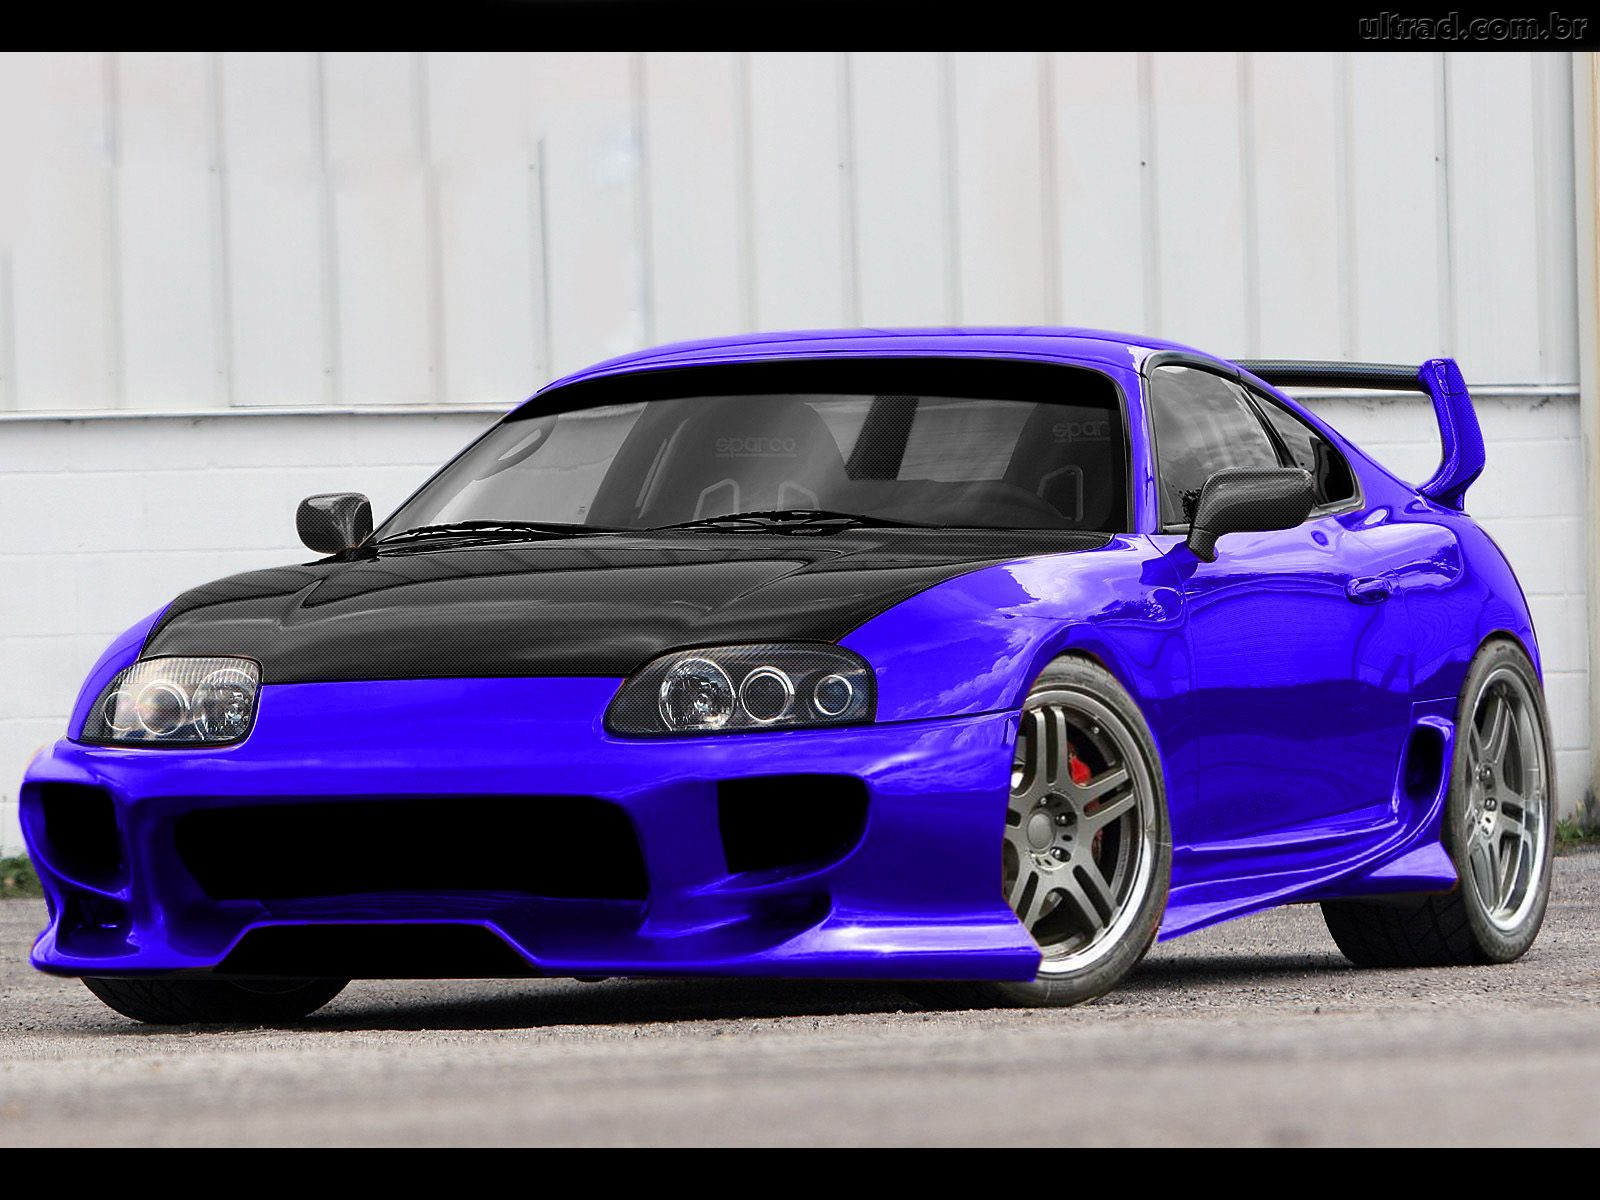 Toyota Supra Wallpaper 22399 Hd Wallpapers in Cars   Imagescicom 1600x1200